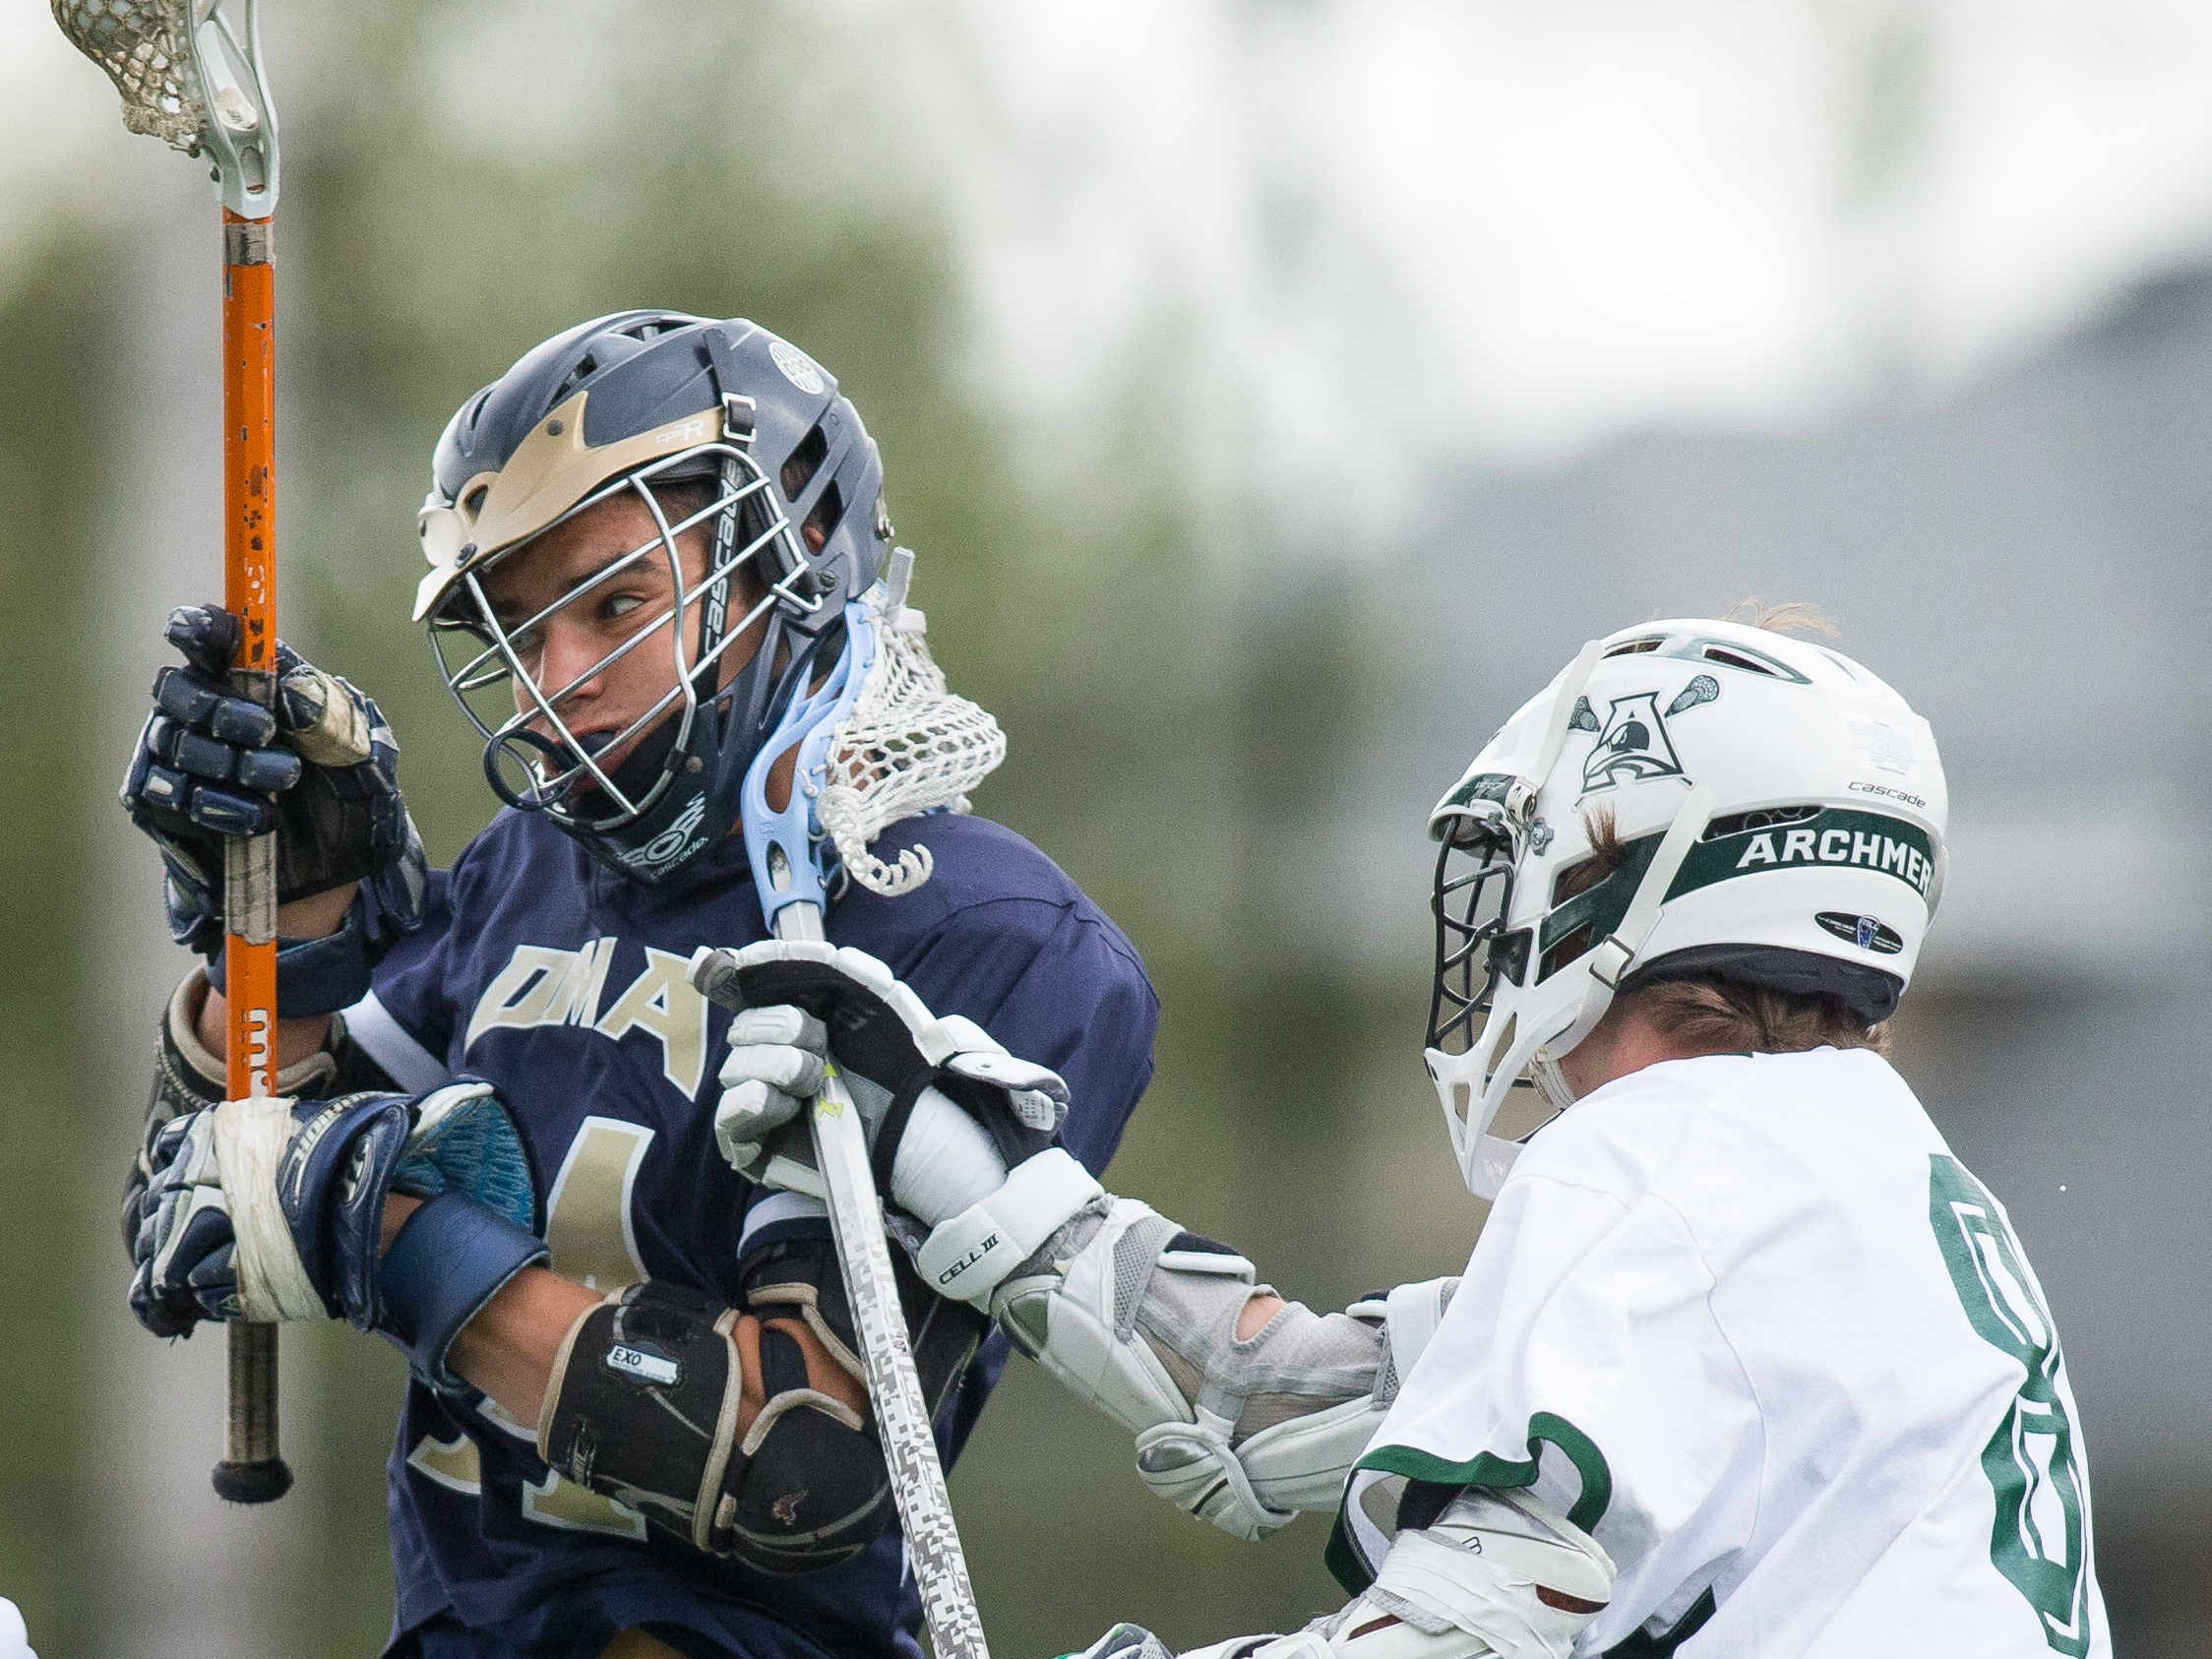 DMA's John Szczecinski (left) gets a stick to the side of his head from Caleb Smack of Archmere.